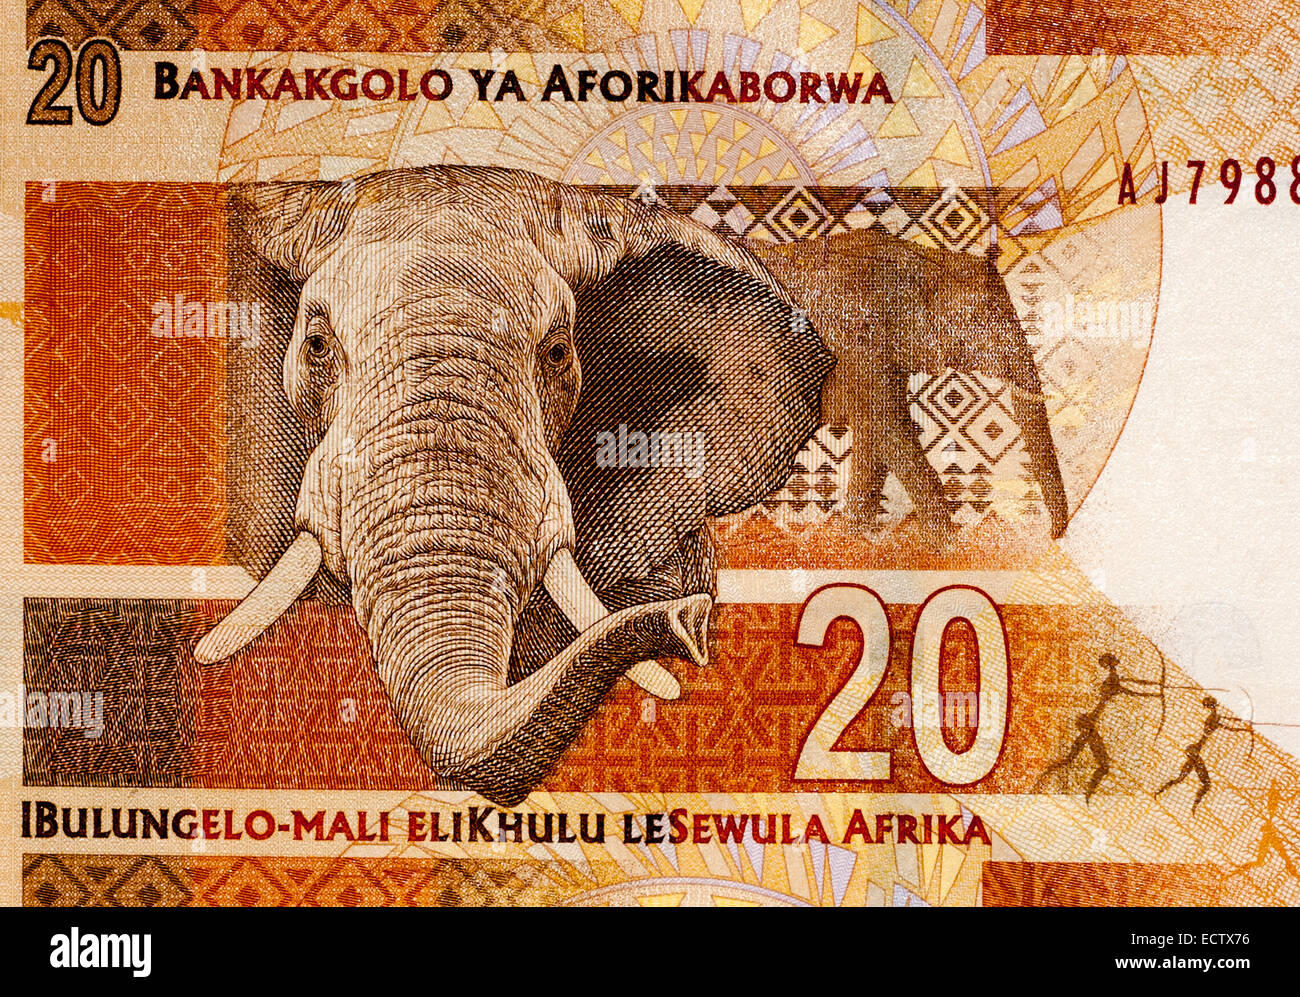 South Africa 20 Twenty Rand Bank Note - Stock Image